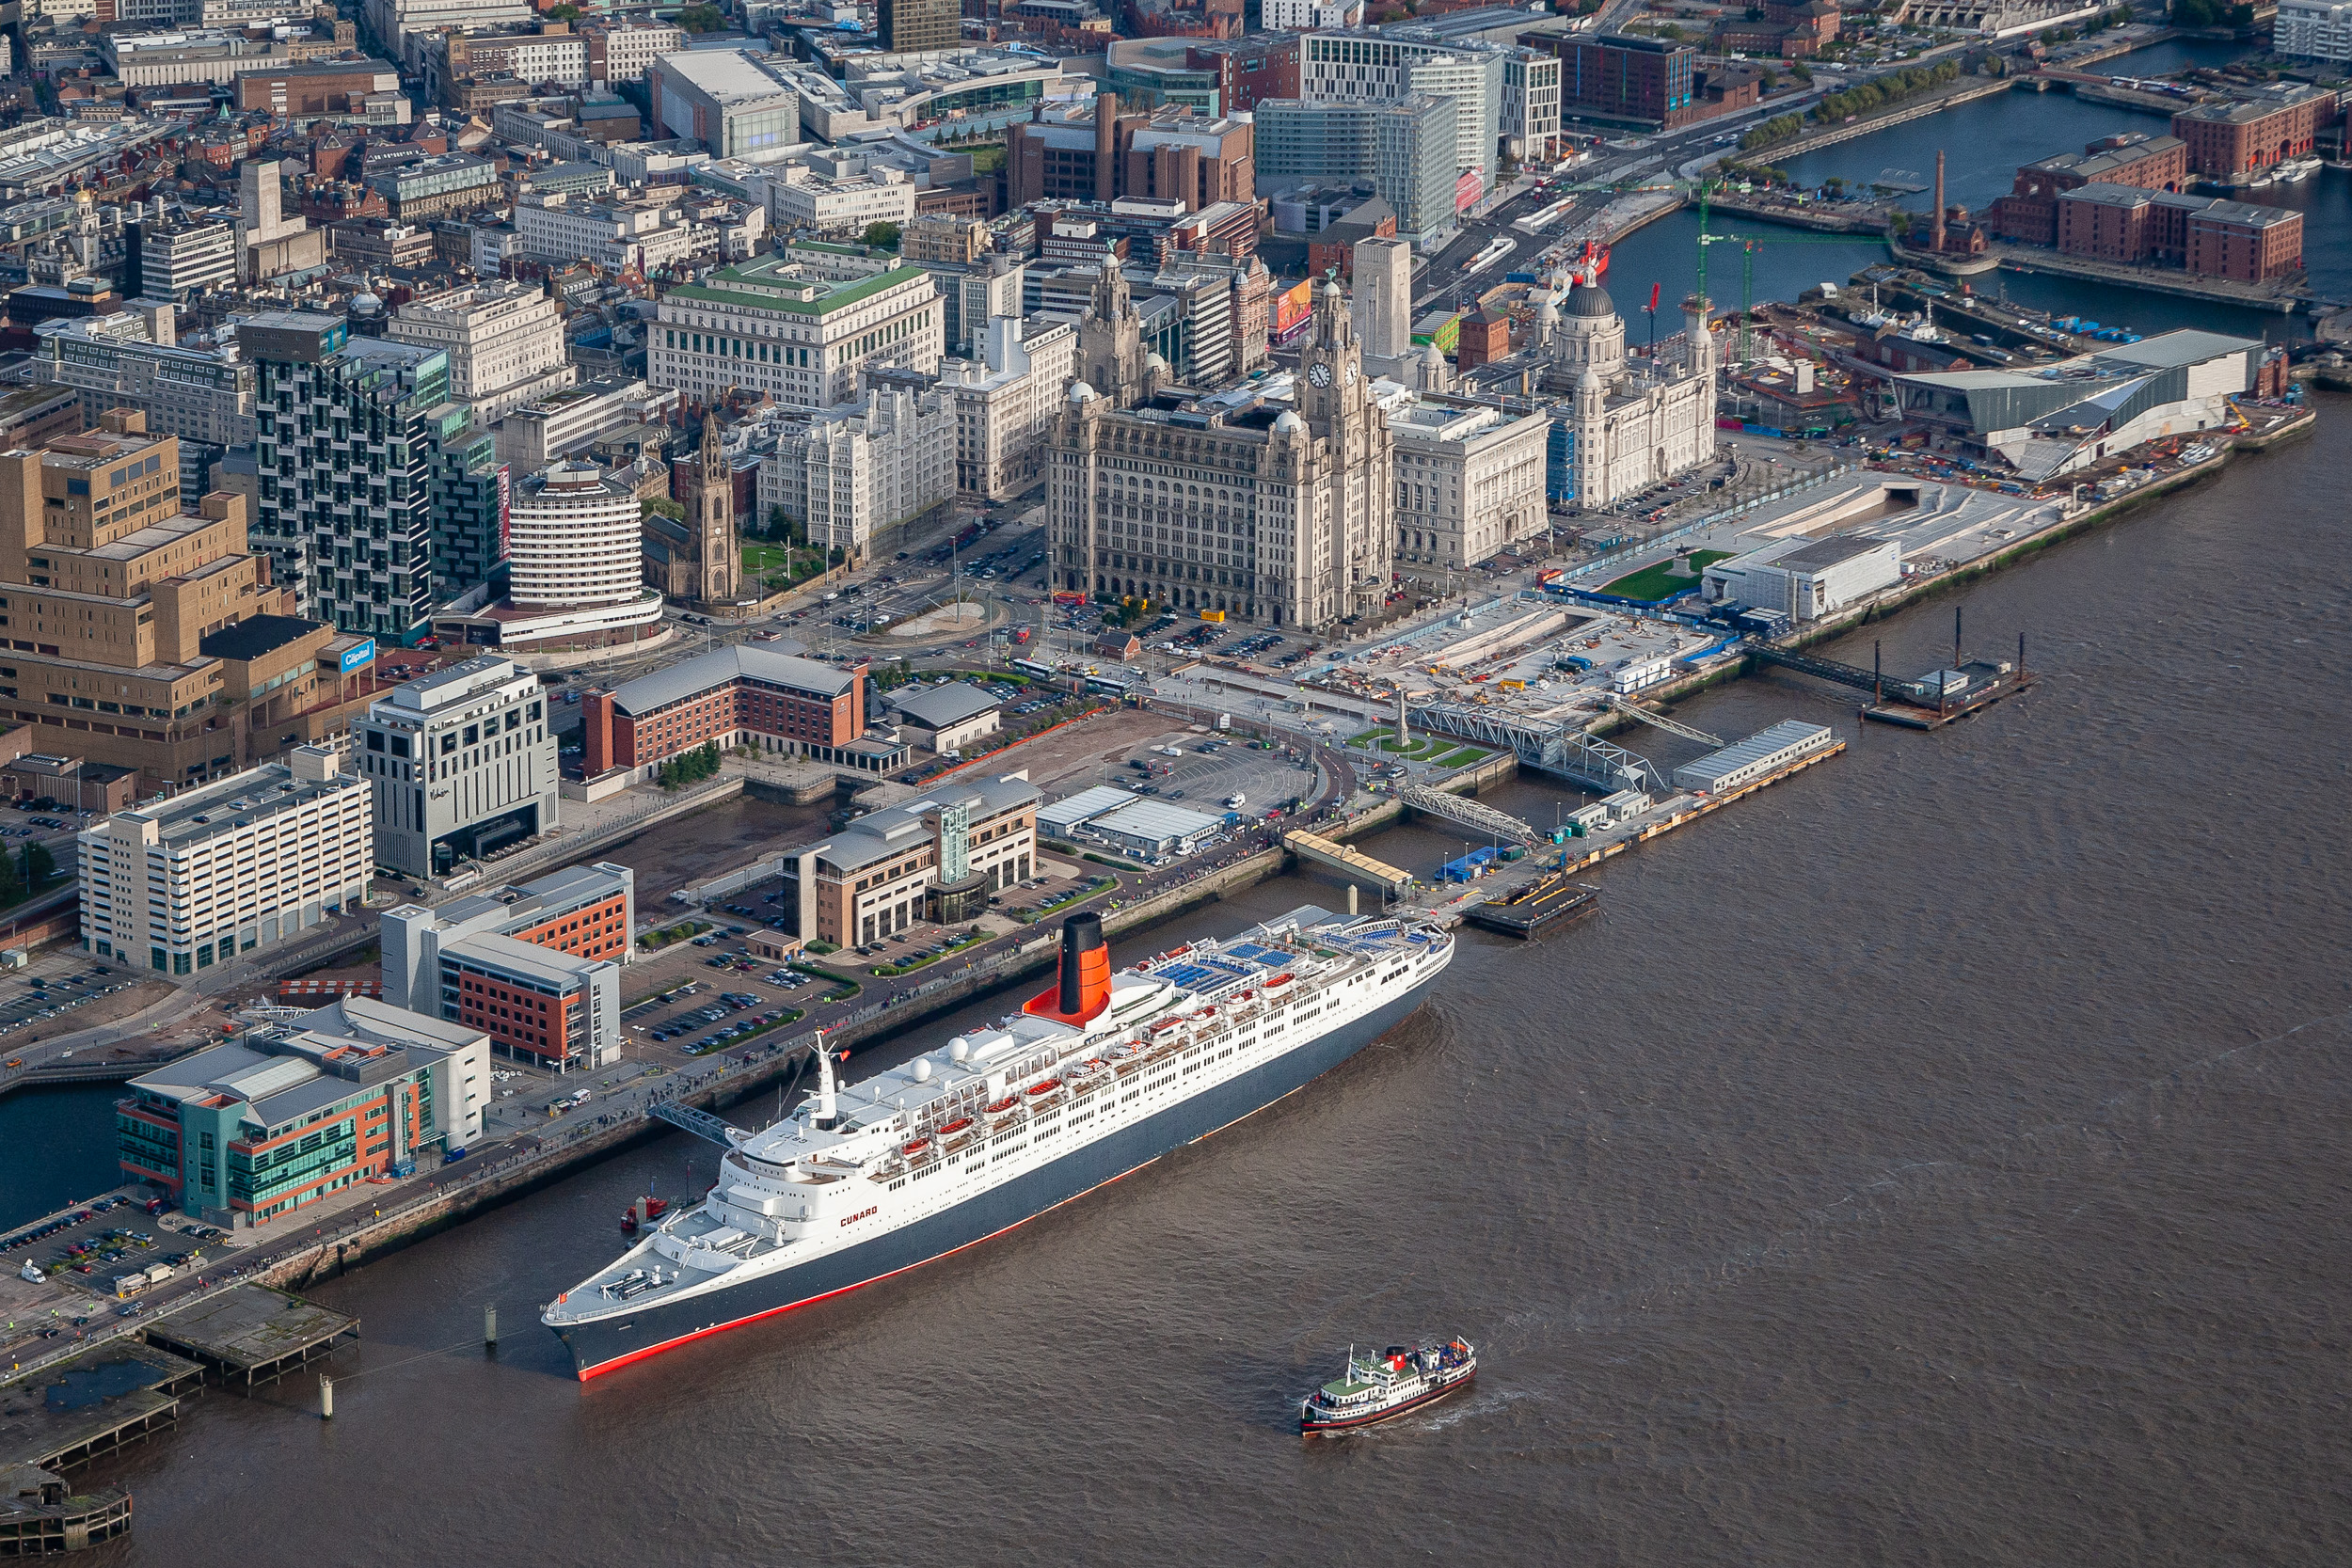 10 Years of Cruise Liverpool